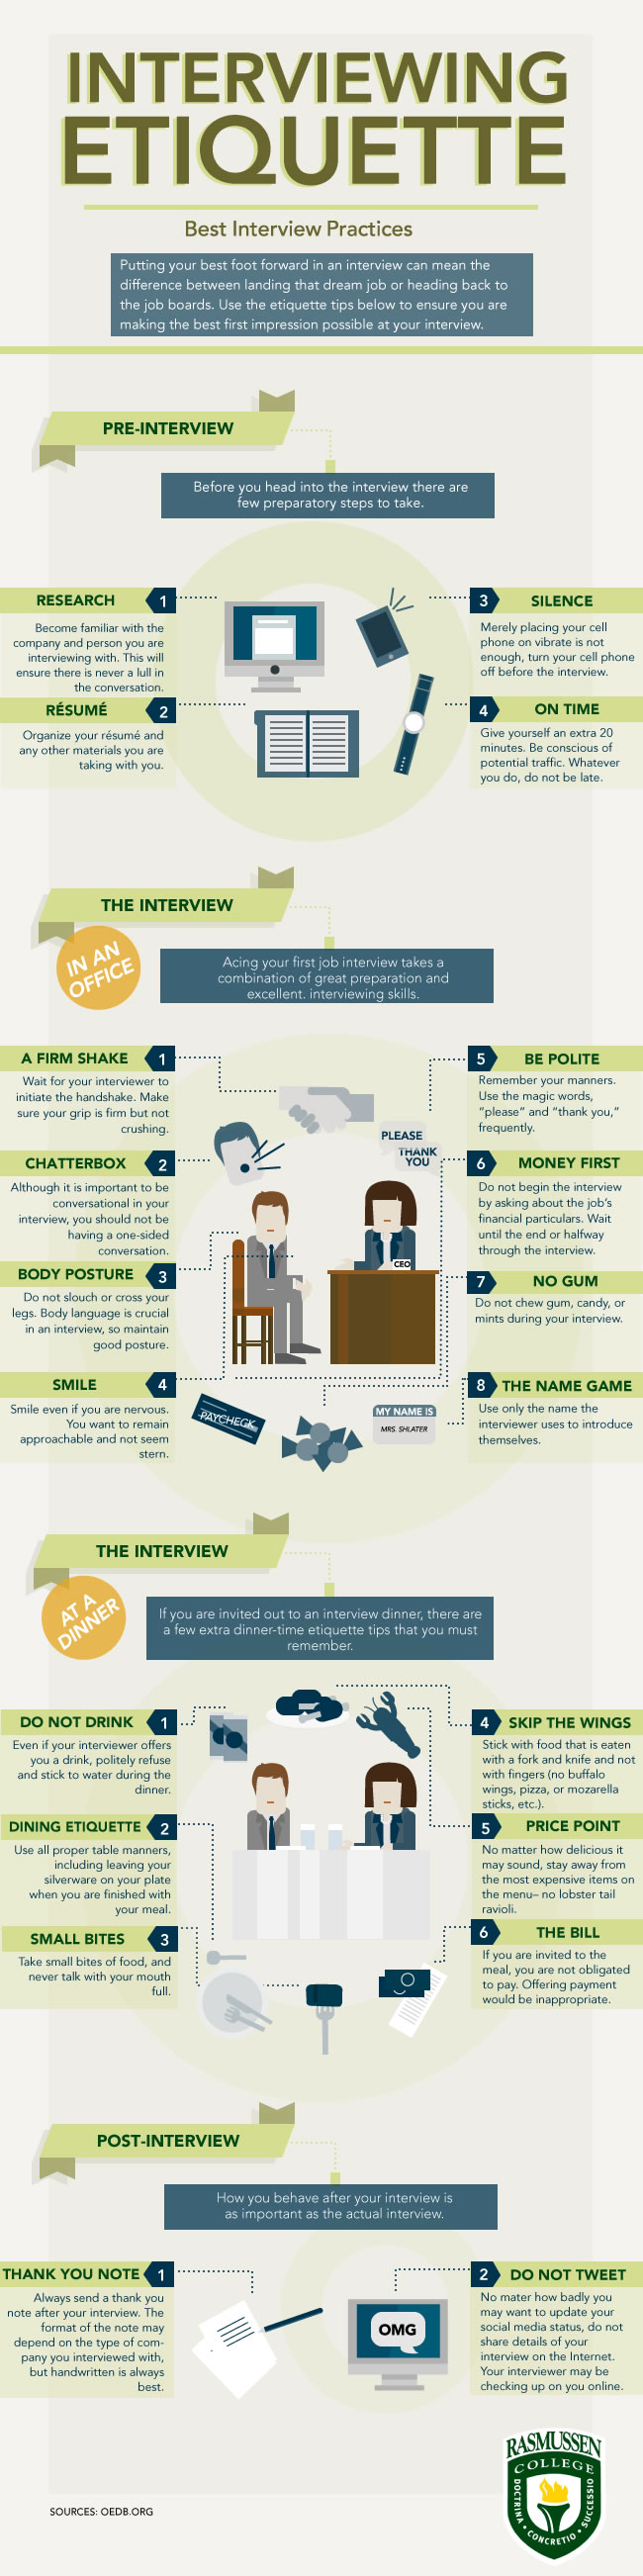 Interview Etiquette